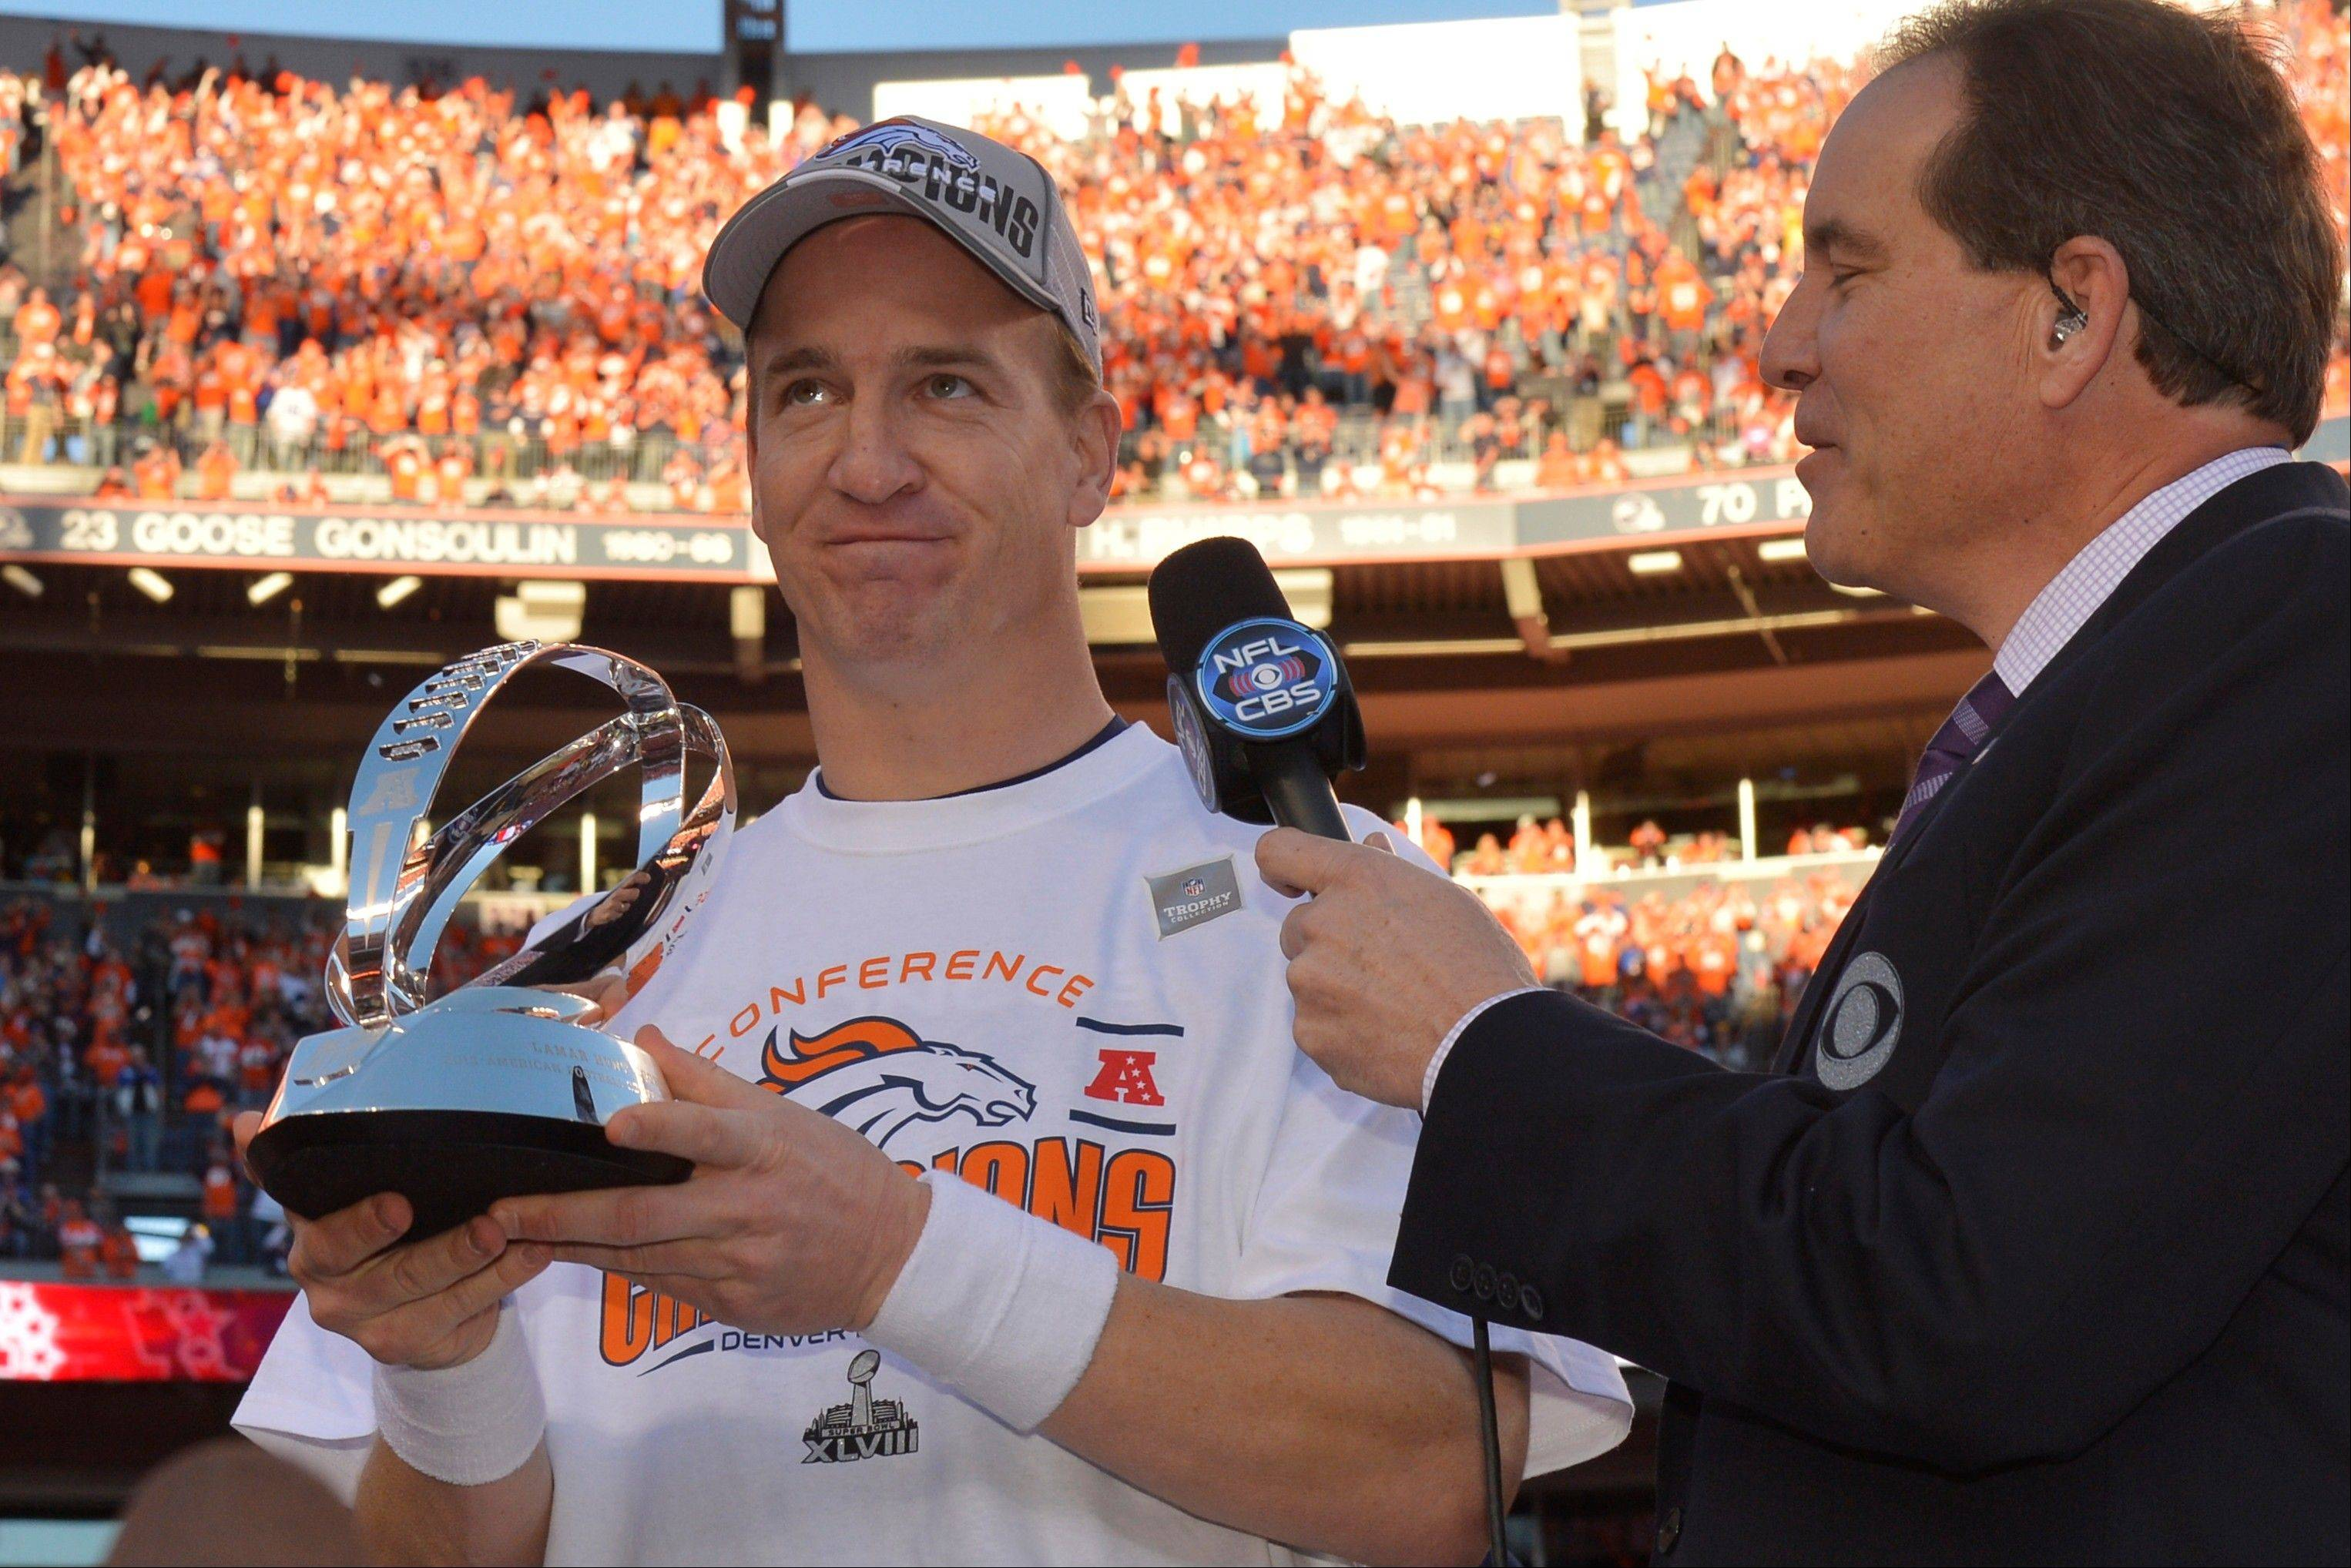 Denver Broncos quarterback Peyton Manning, left, holds the trophy after the AFC Championship NFL playoff football game against the New England Patriots in Denver, Sunday, Jan. 19, 2014. The Broncos defeated the Patriots 26-16 to advance to the Super Bowl.